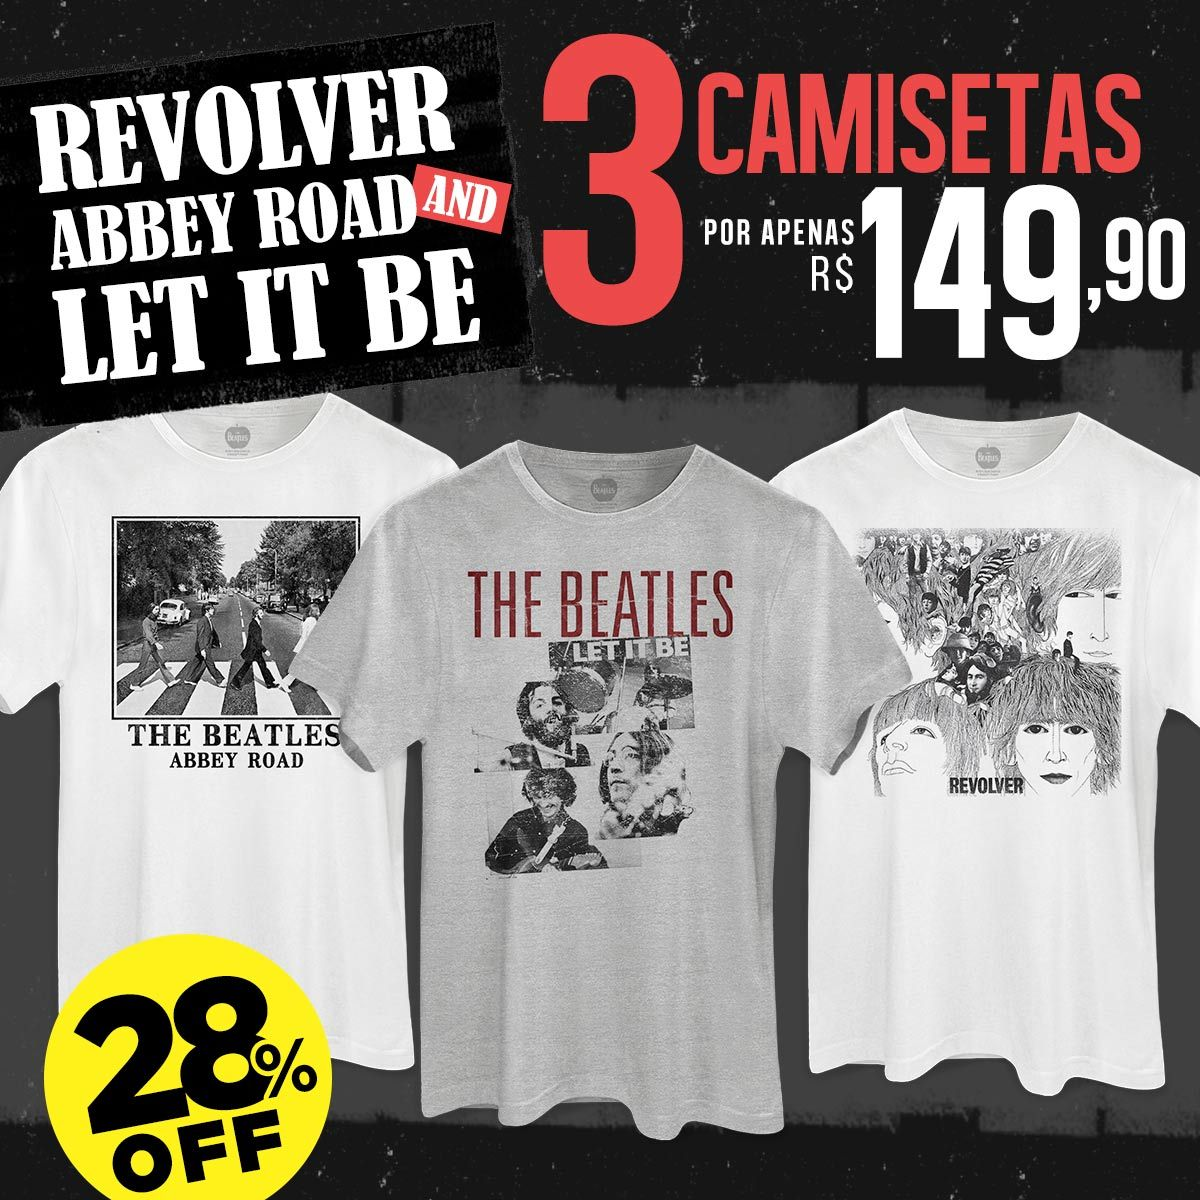 Combo Revolver, Abbey Road and Let it Be!